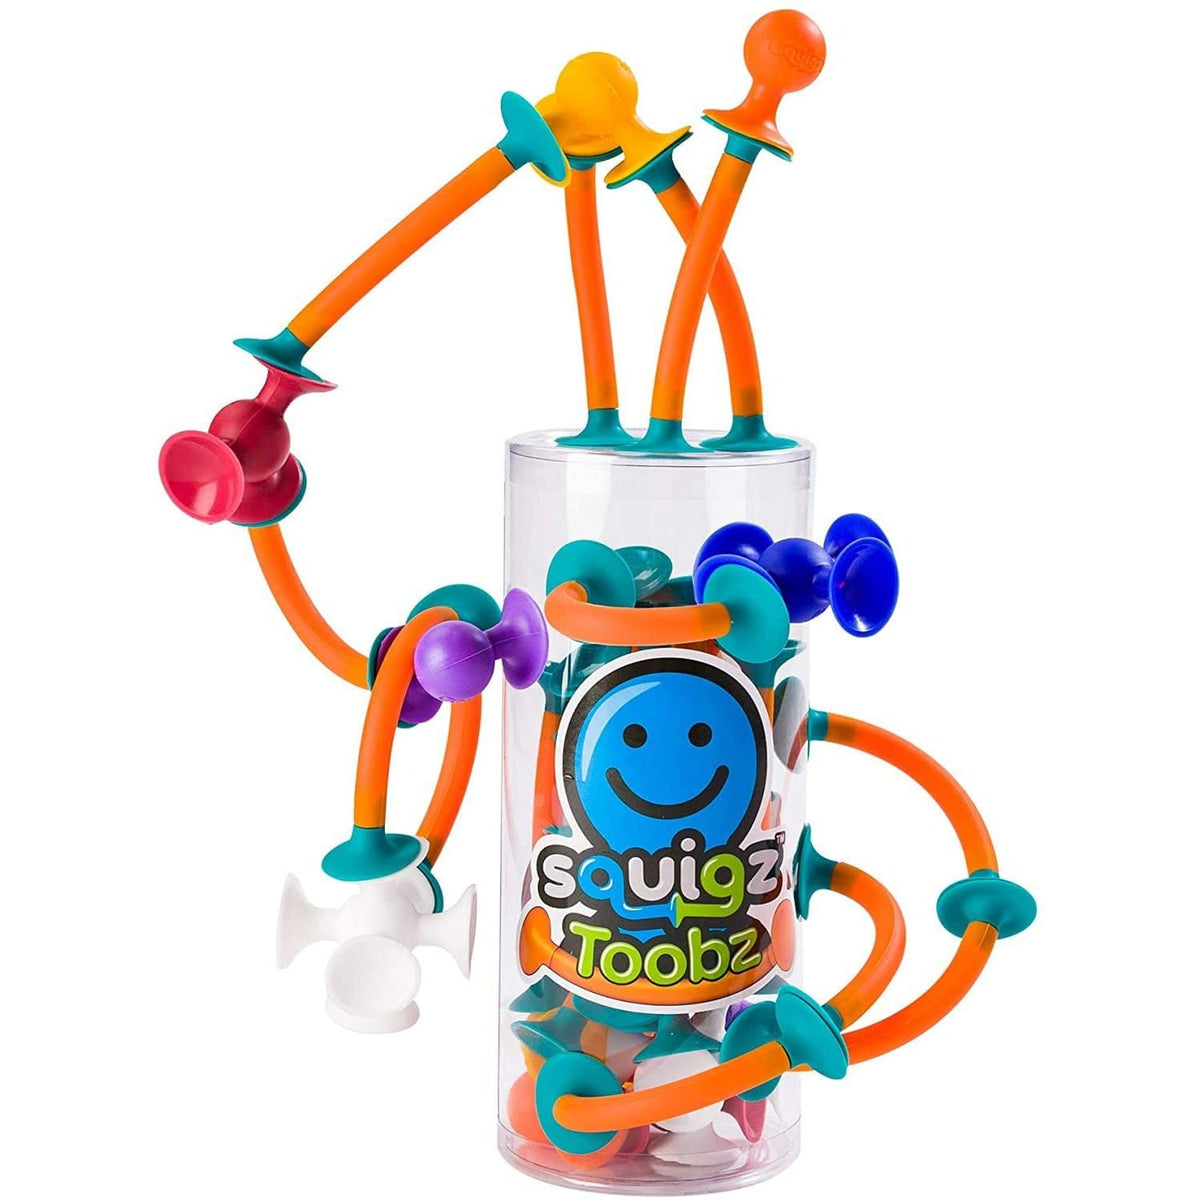 Squigz Toobz Set Fat Brain Toys Co Puzzles/Playthings